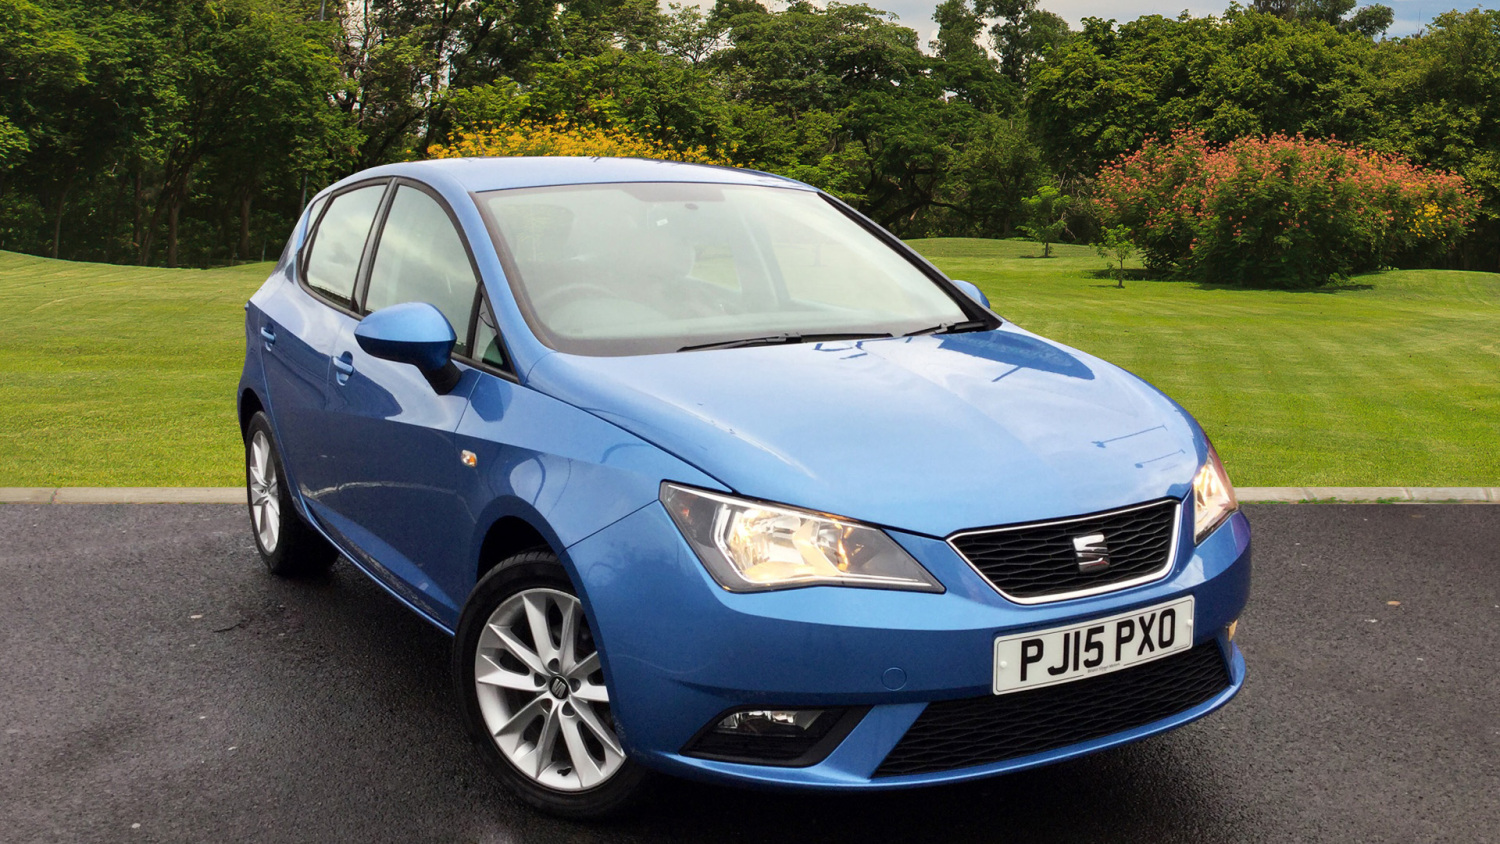 Seat Ibiza For Sale Birmingham Used Seat Ibiza 1 4 Toca 5dr Petrol Hatchback For Sale